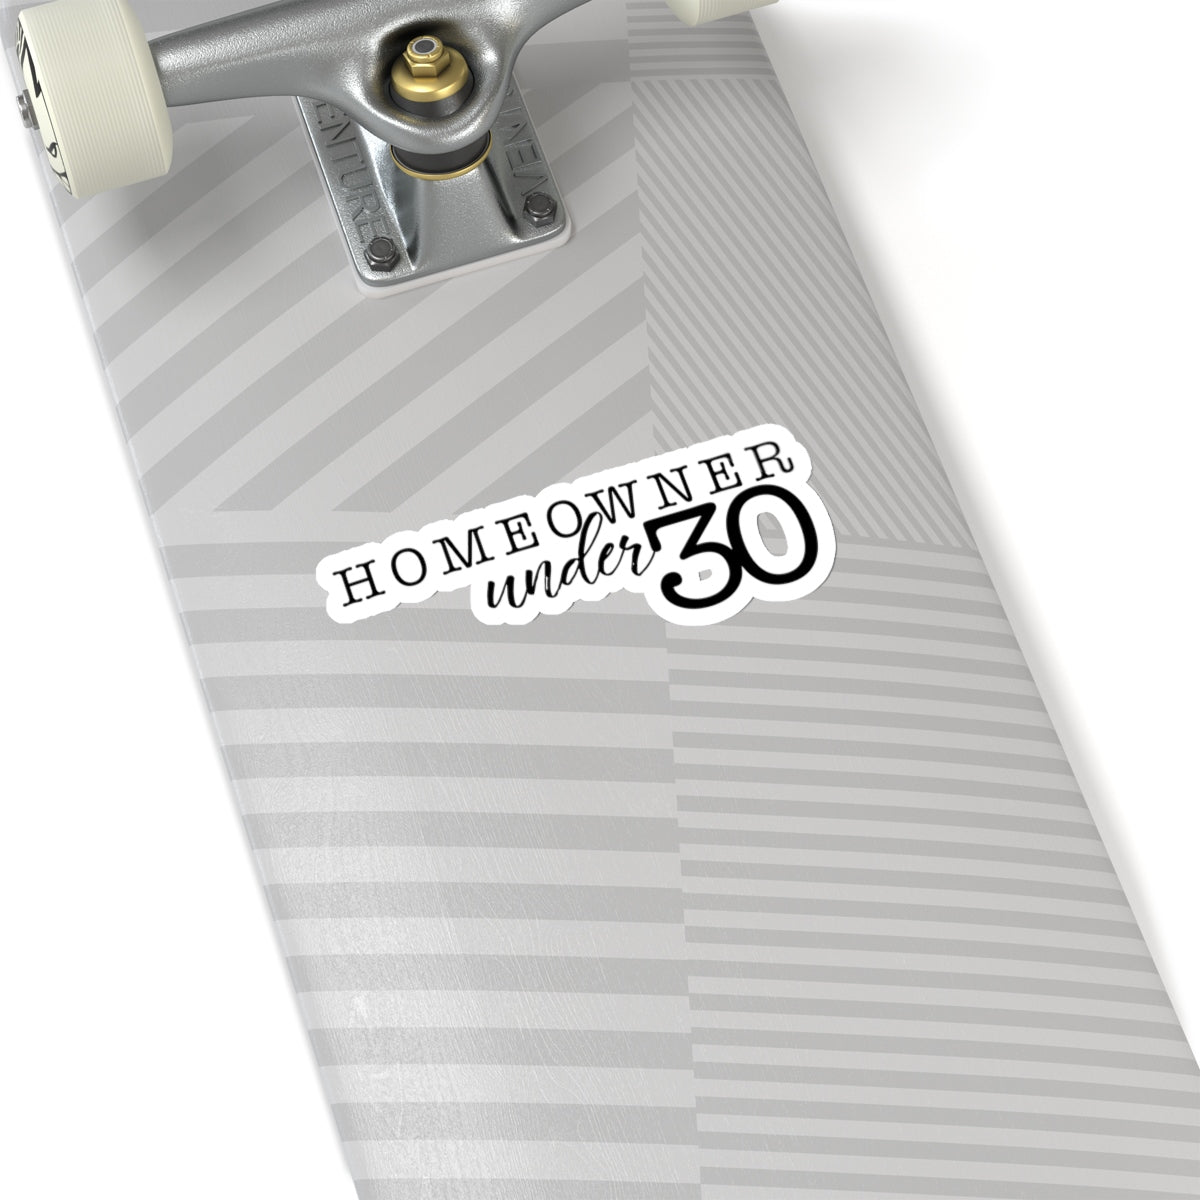 Homeowner Under 30 Kiss-Cut Stickers